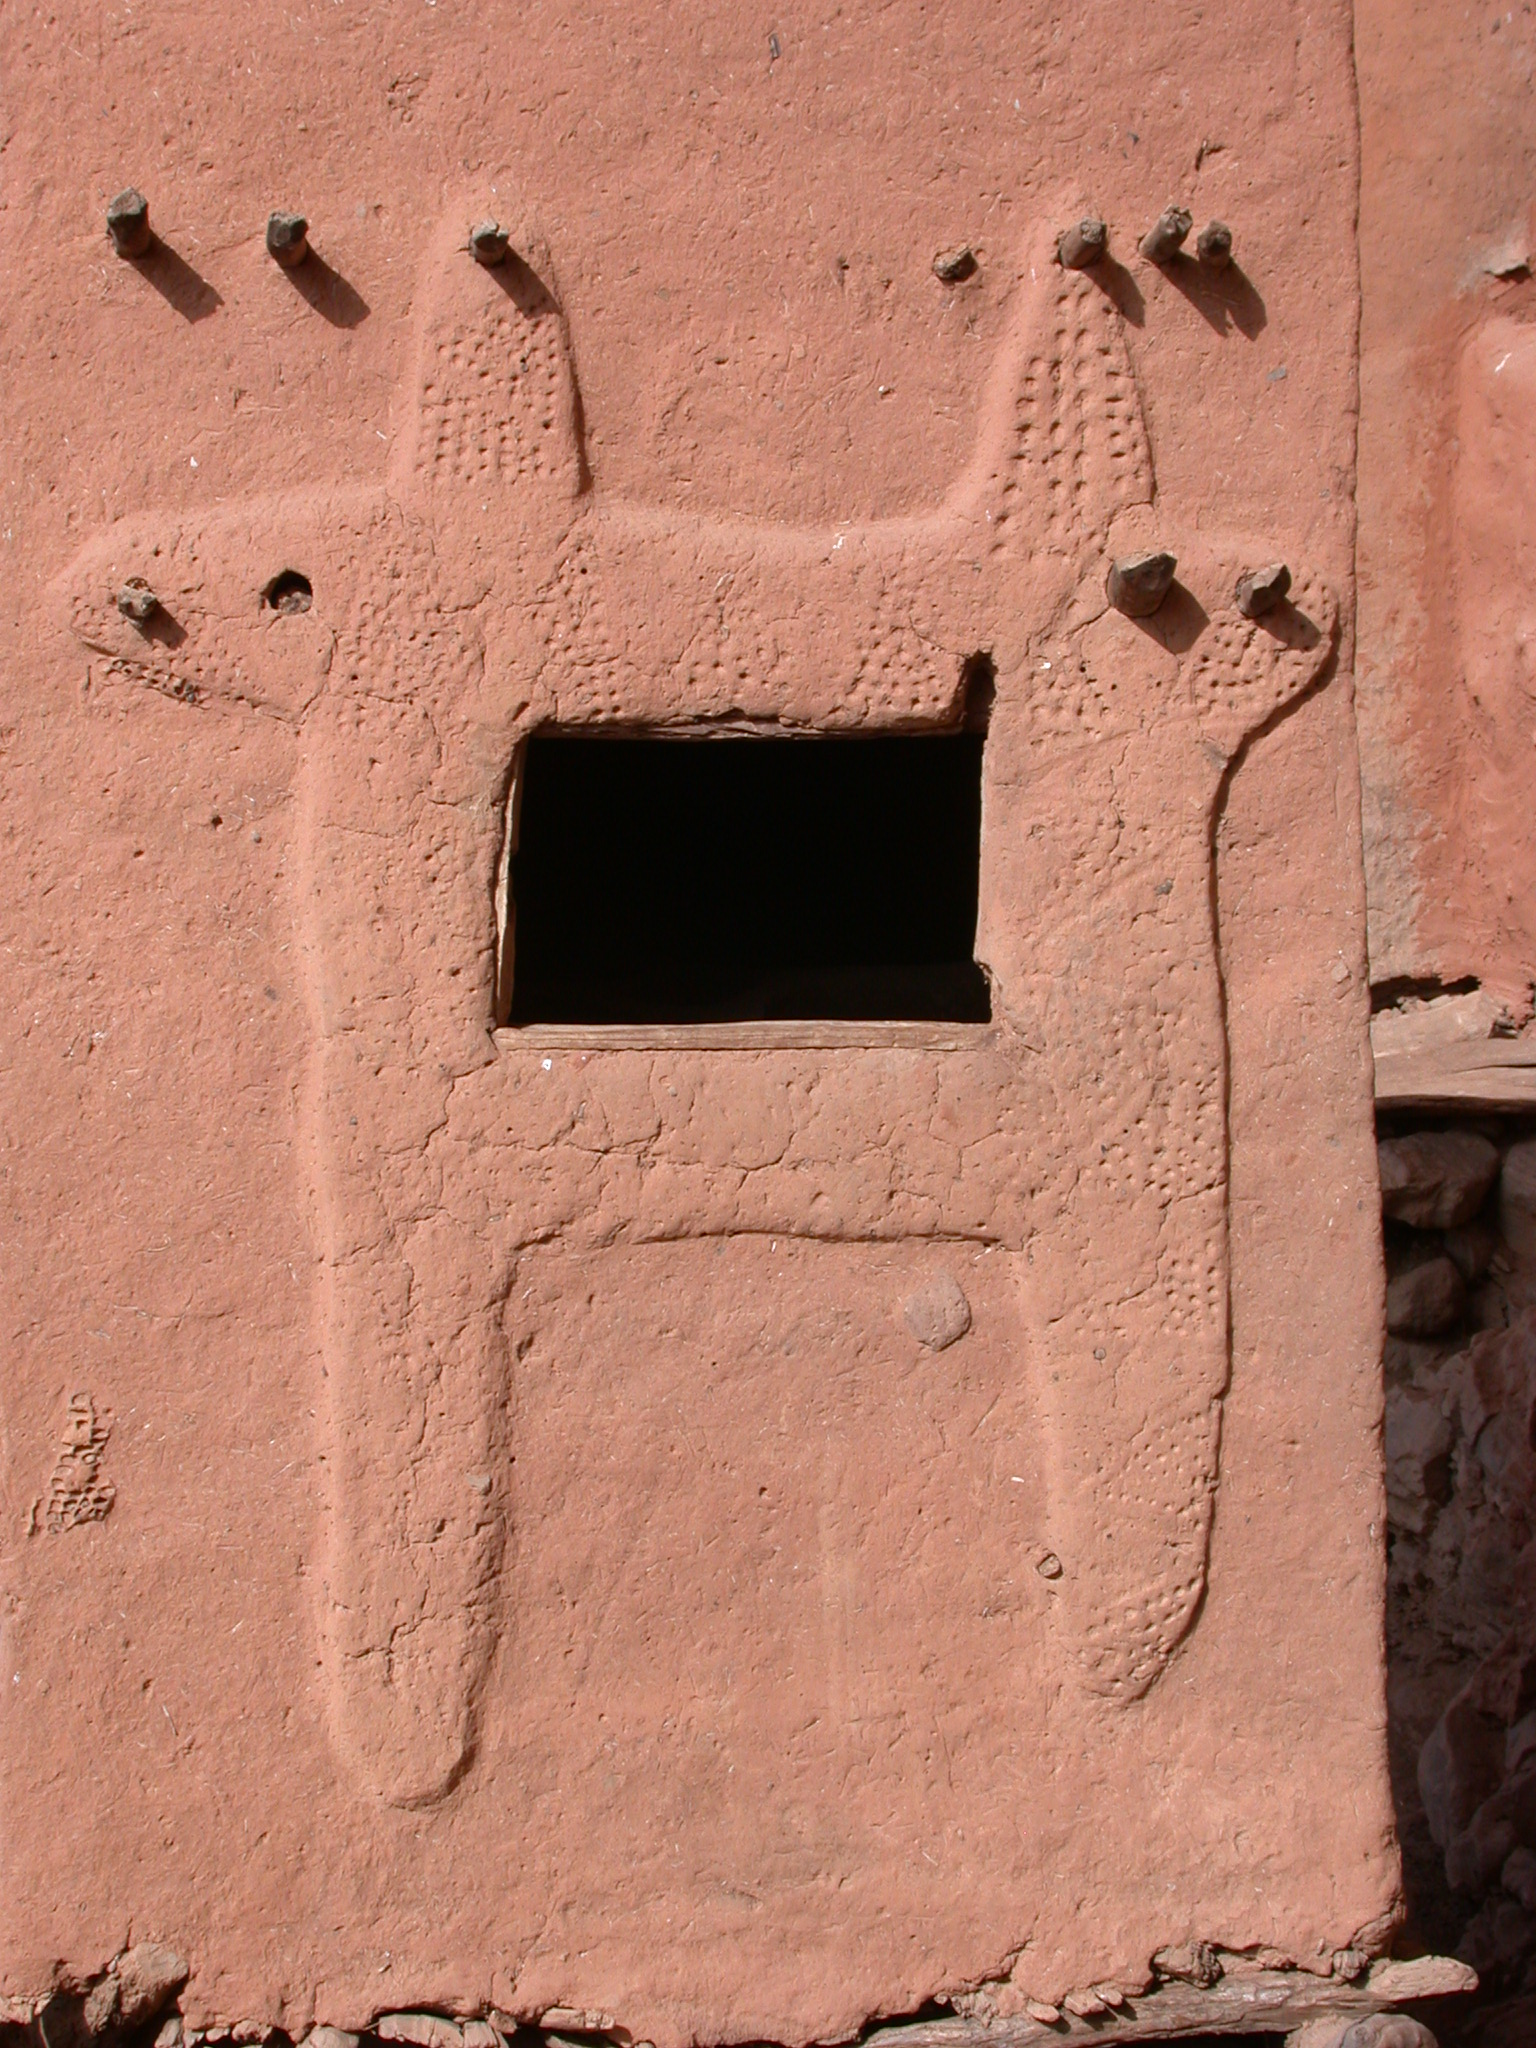 Lovely Design Around Window of Tellem Village Building, Dogon Country, Mali